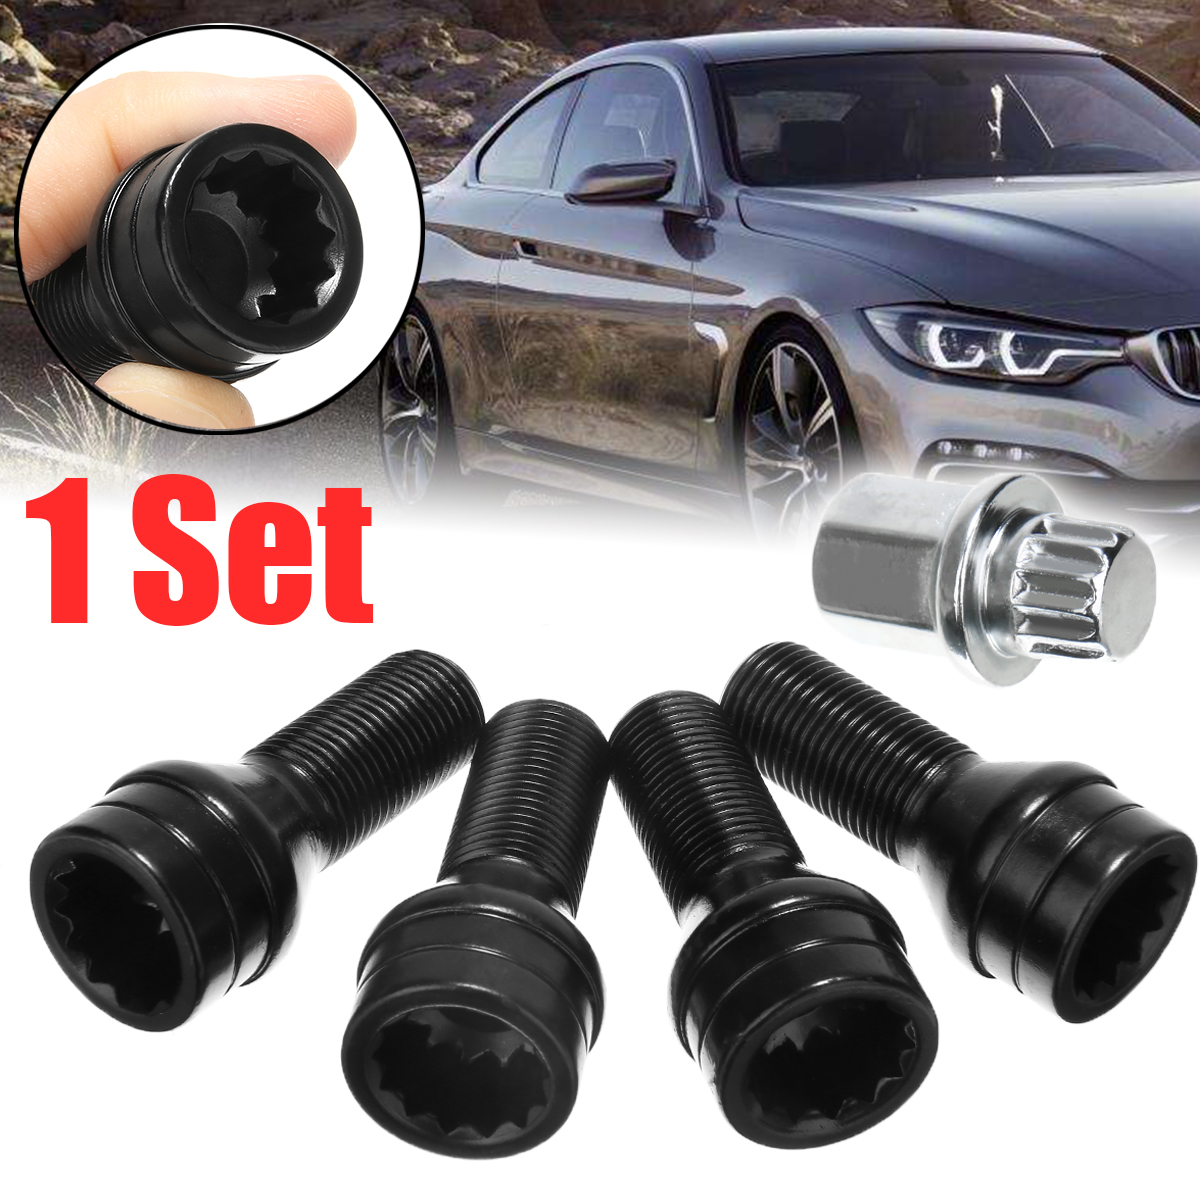 5pcs/set Black Wheel Lock Set Black Lug Bolts M14x1.25 For BMW F-Models 36136776076 6776076